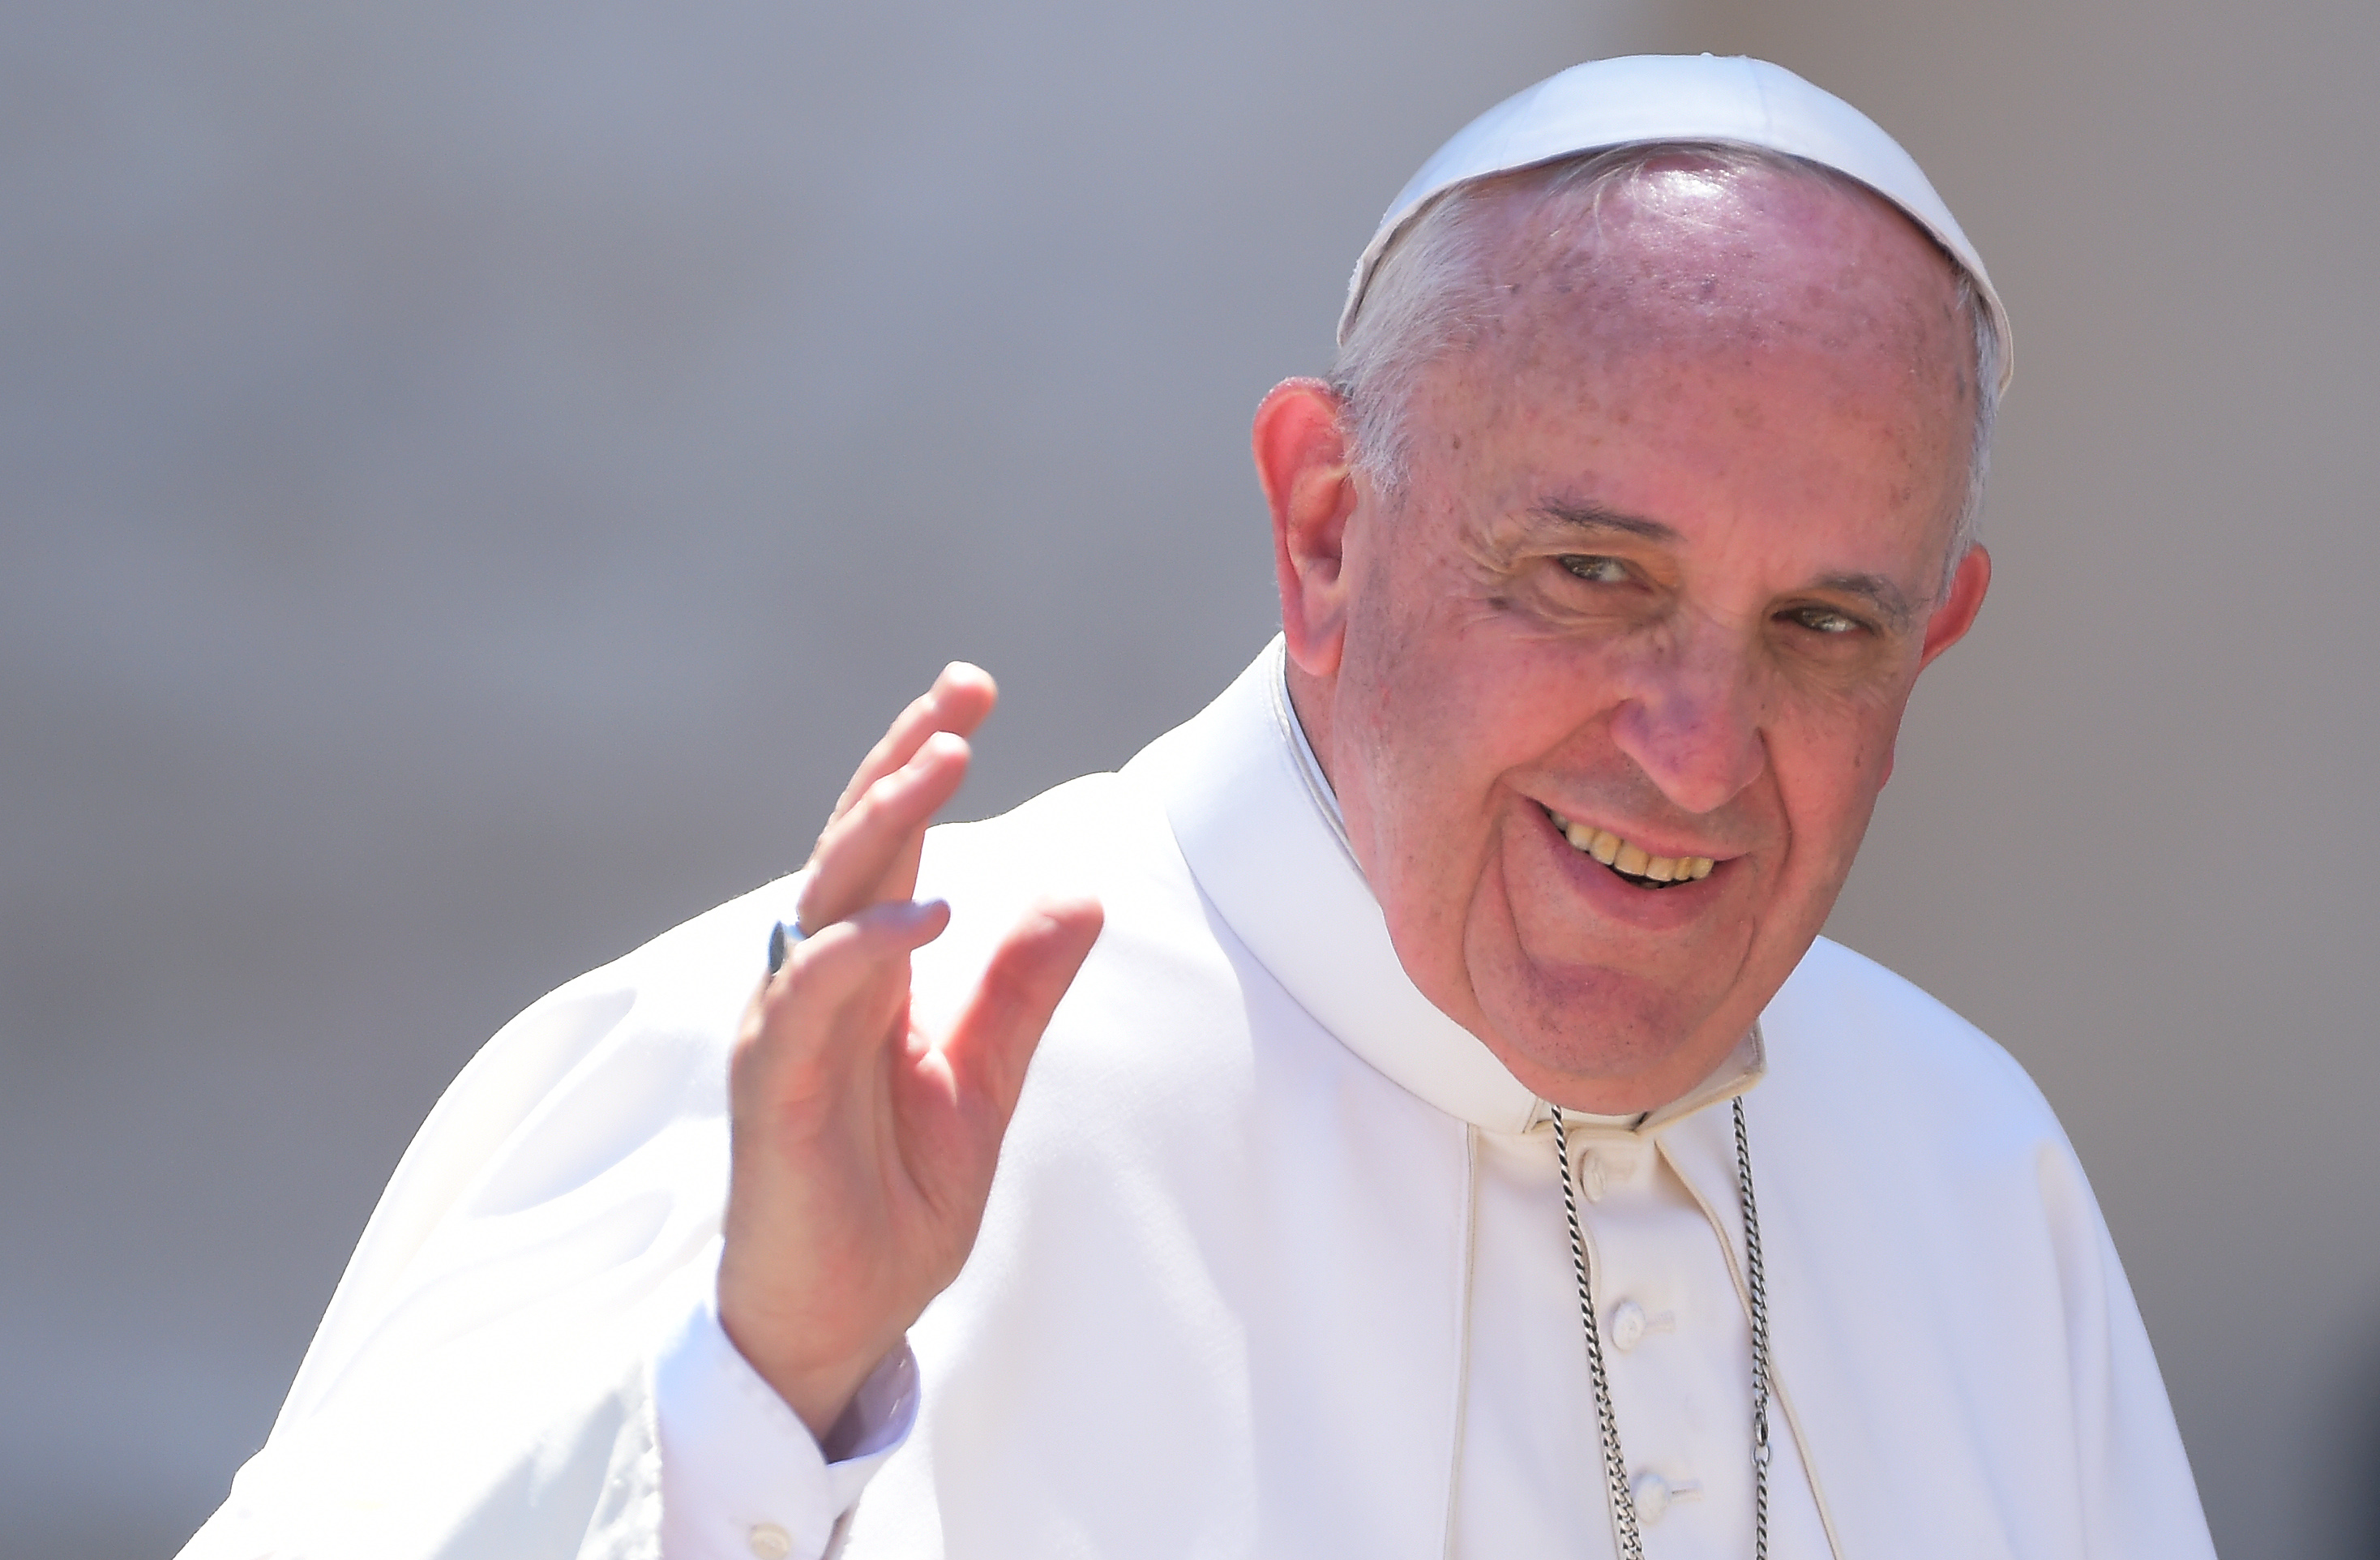 Pope Francis attends the weekly general audience in Saint Peter's Square at the Vatican on April 22, 2015